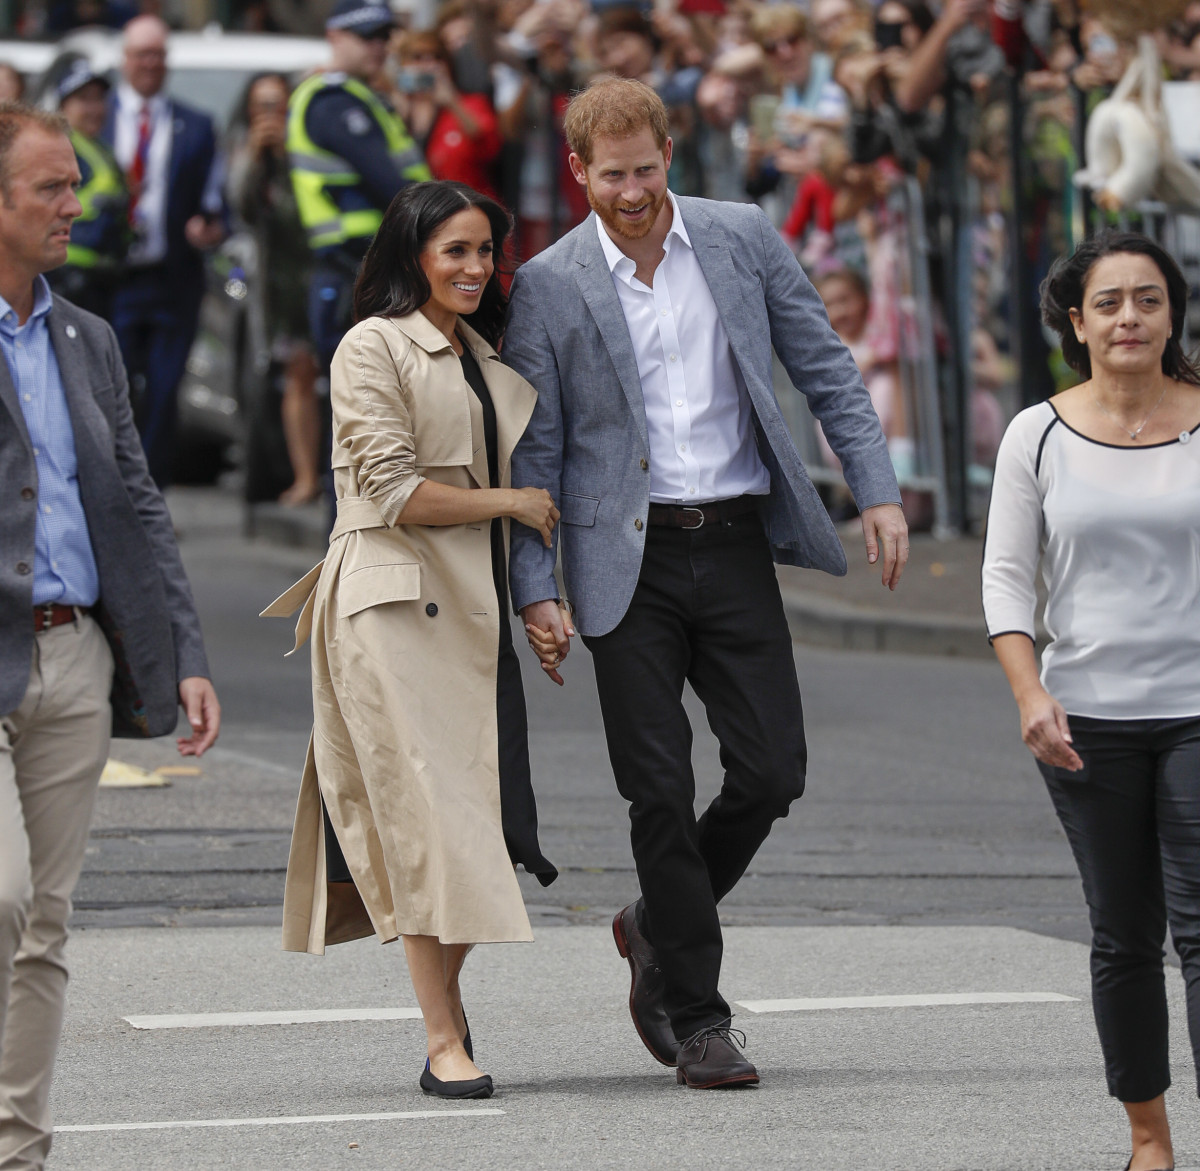 Prince Harry and Meghan Markle catch a tram in Melbourne